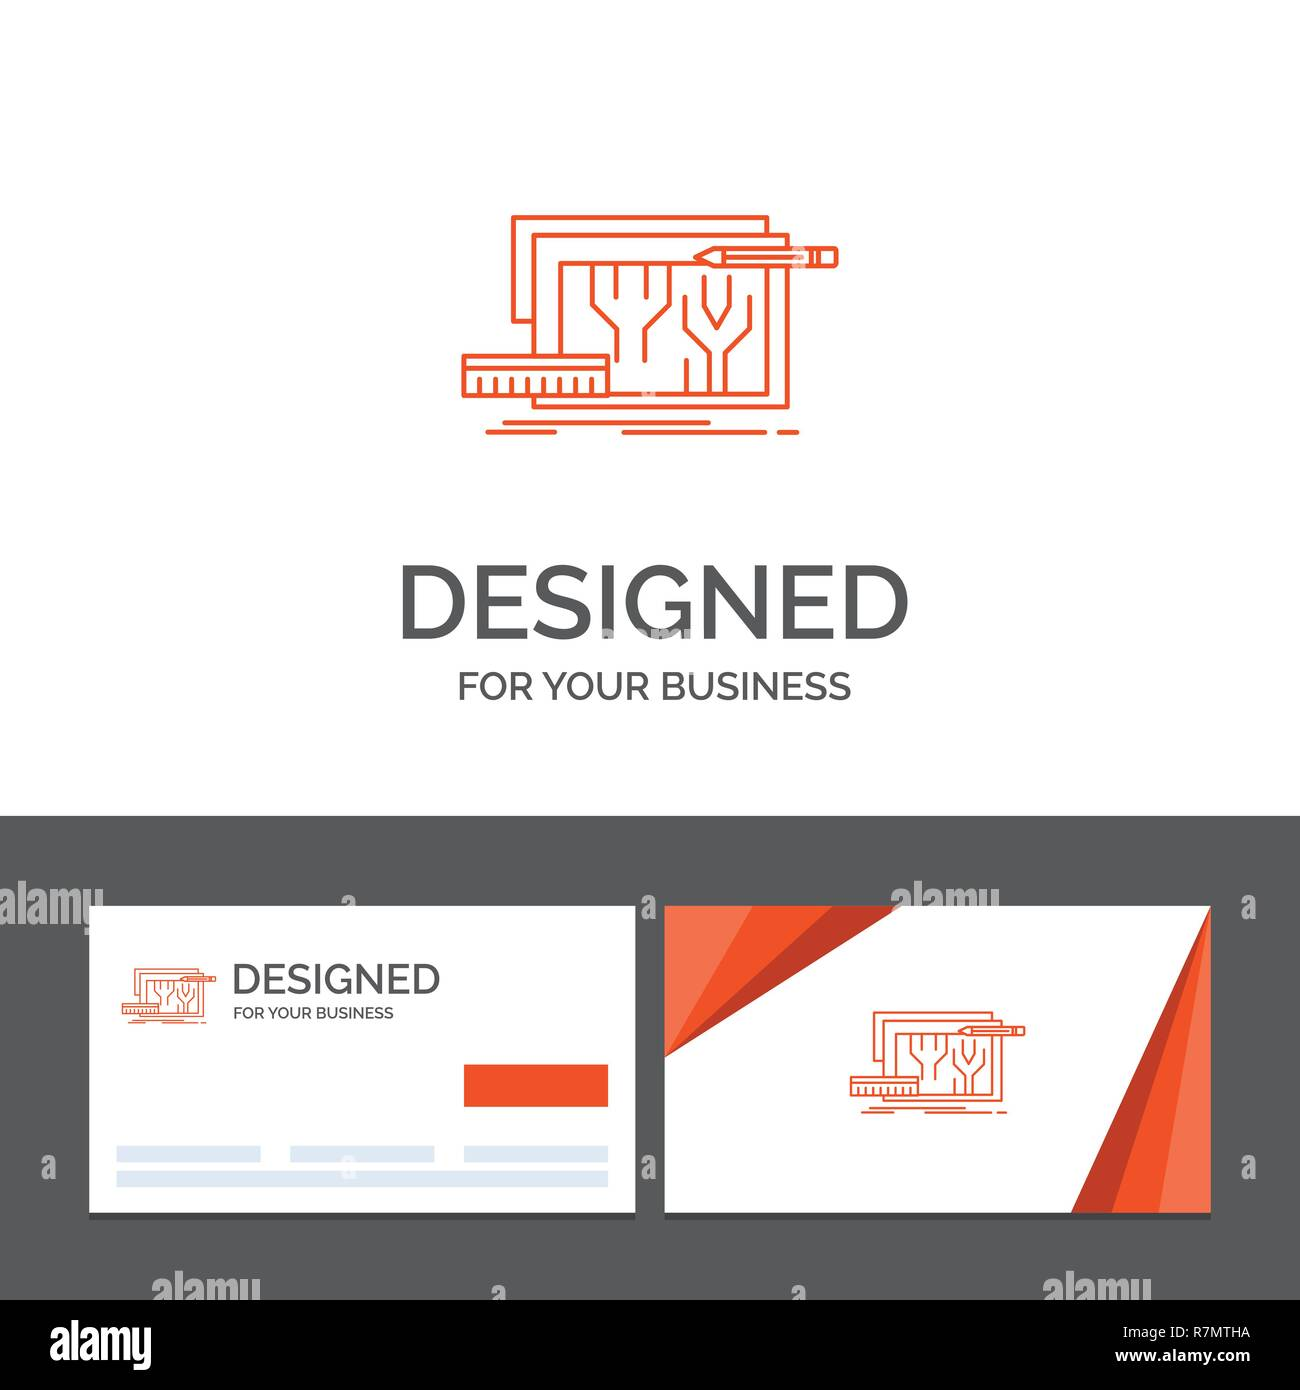 Business logo template for Architecture, blueprint, circuit, design, engineering. Orange Visiting Cards with Brand logo template - Stock Image